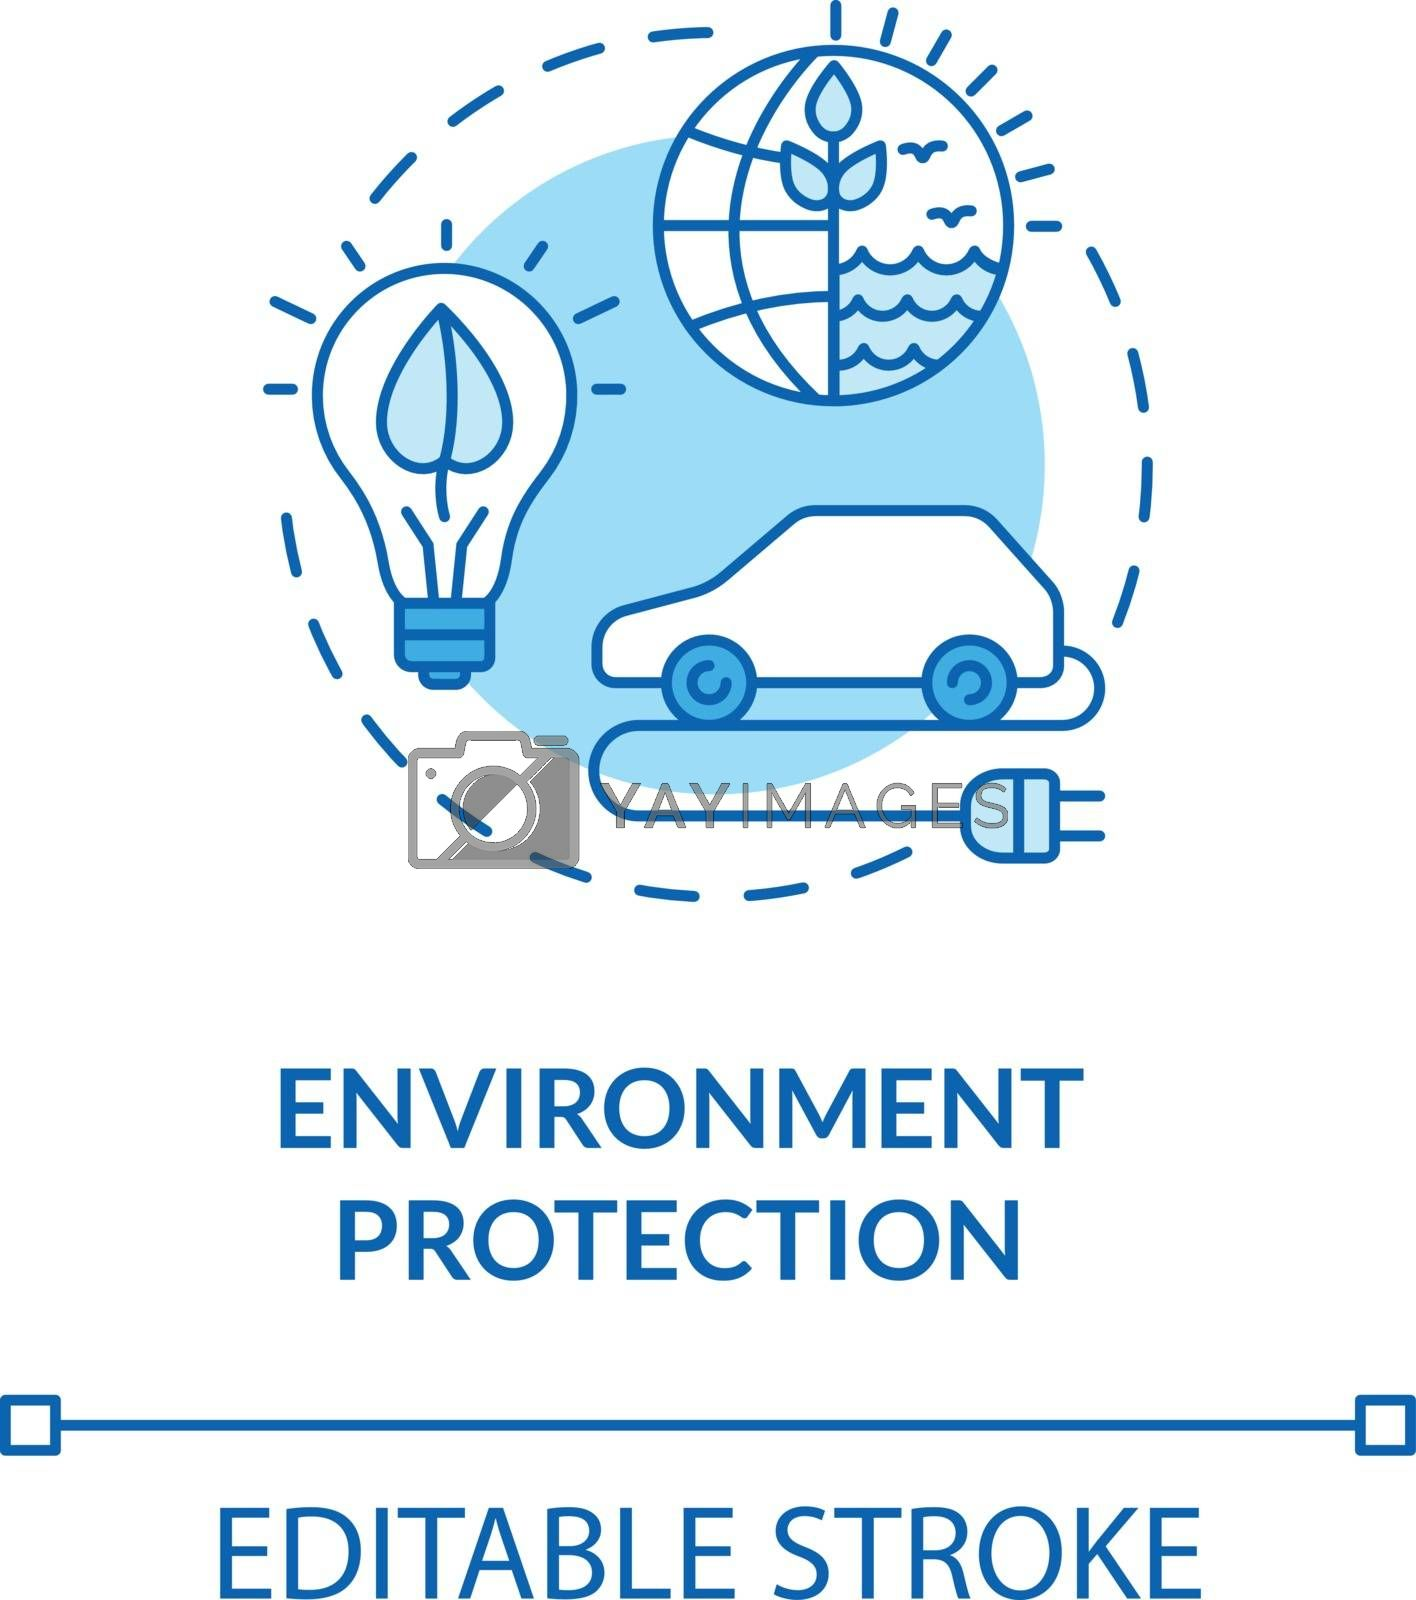 Environment protection turquoise concept icon. Eco friendly technology. Alternative energy supply idea thin line illustration. Vector isolated outline RGB color drawing. Editable stroke